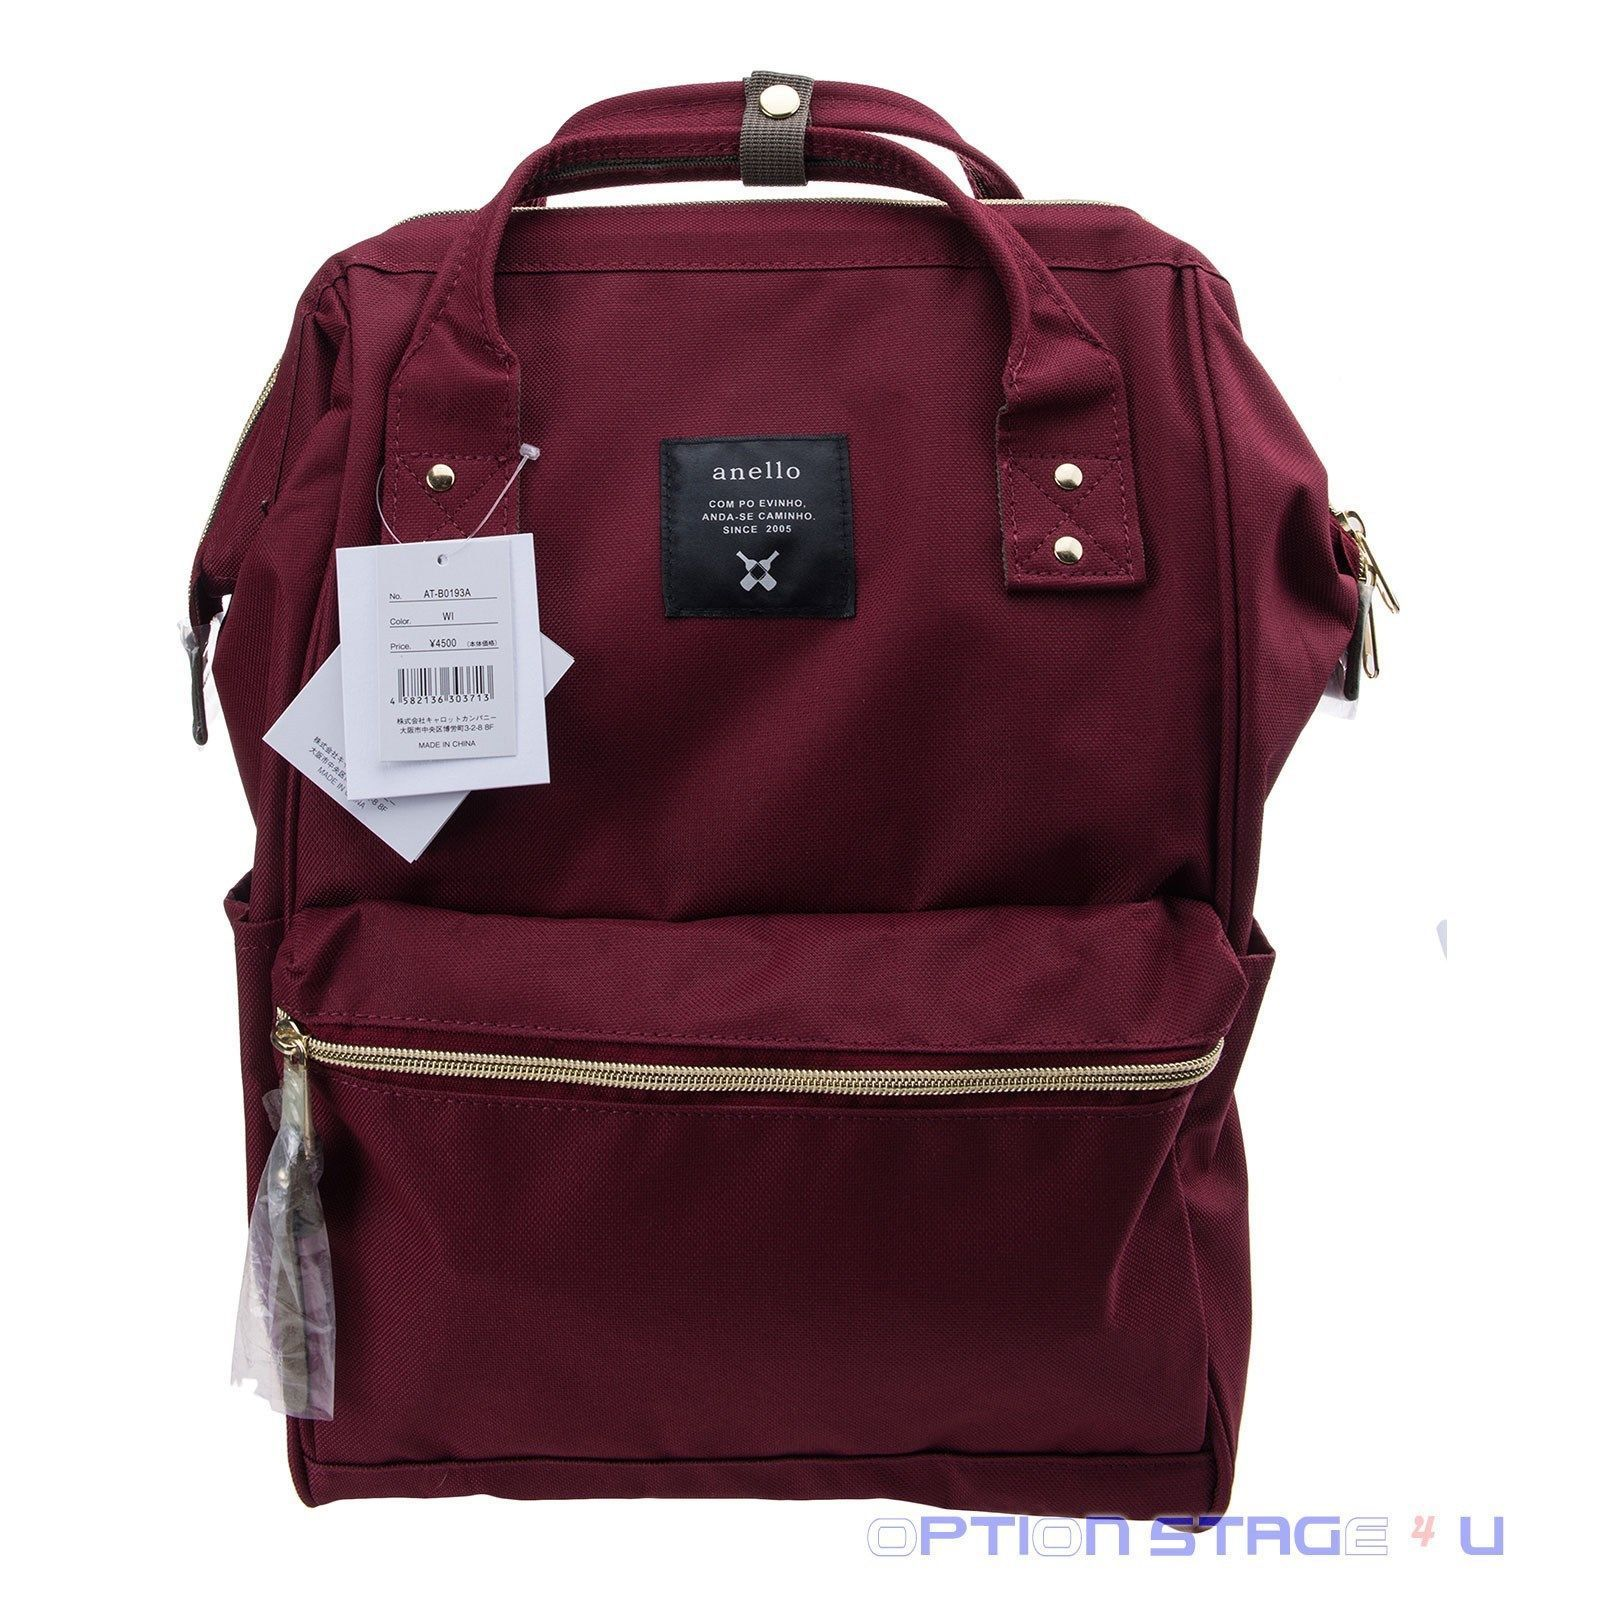 Anello Official Rudy Red Japan Unisex Fashion Backpack Rucksack Diaper Bag 3aa9a72088149